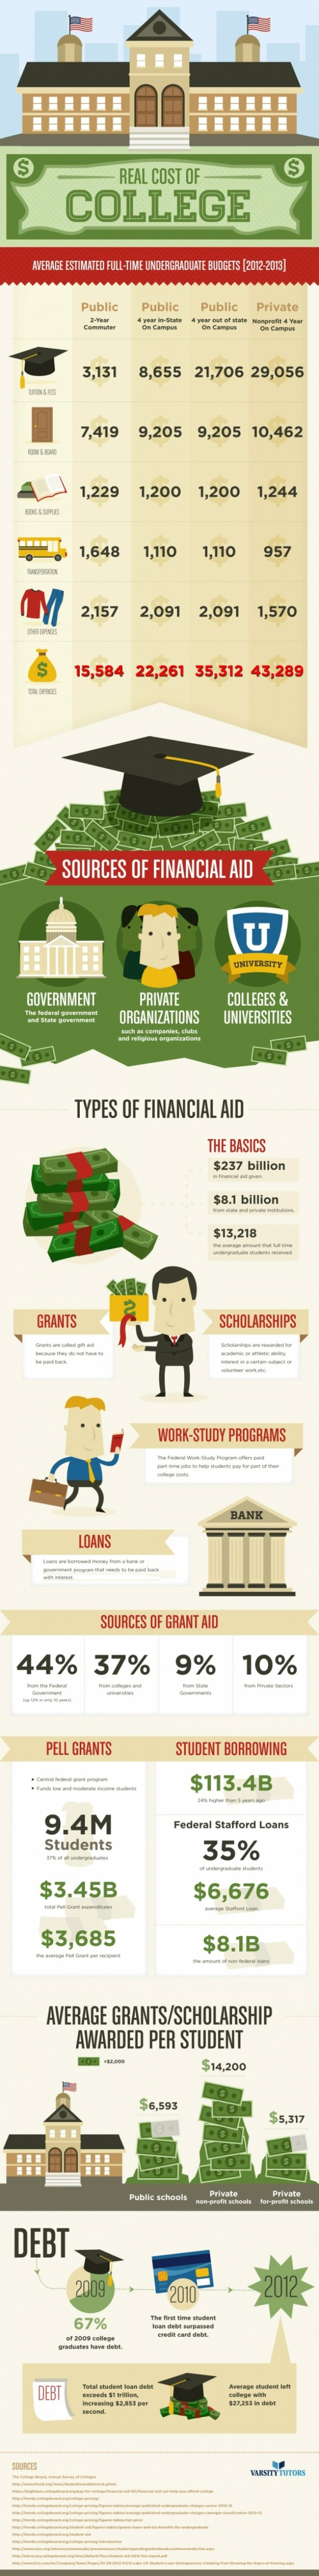 The Real Cost Of College In 2013